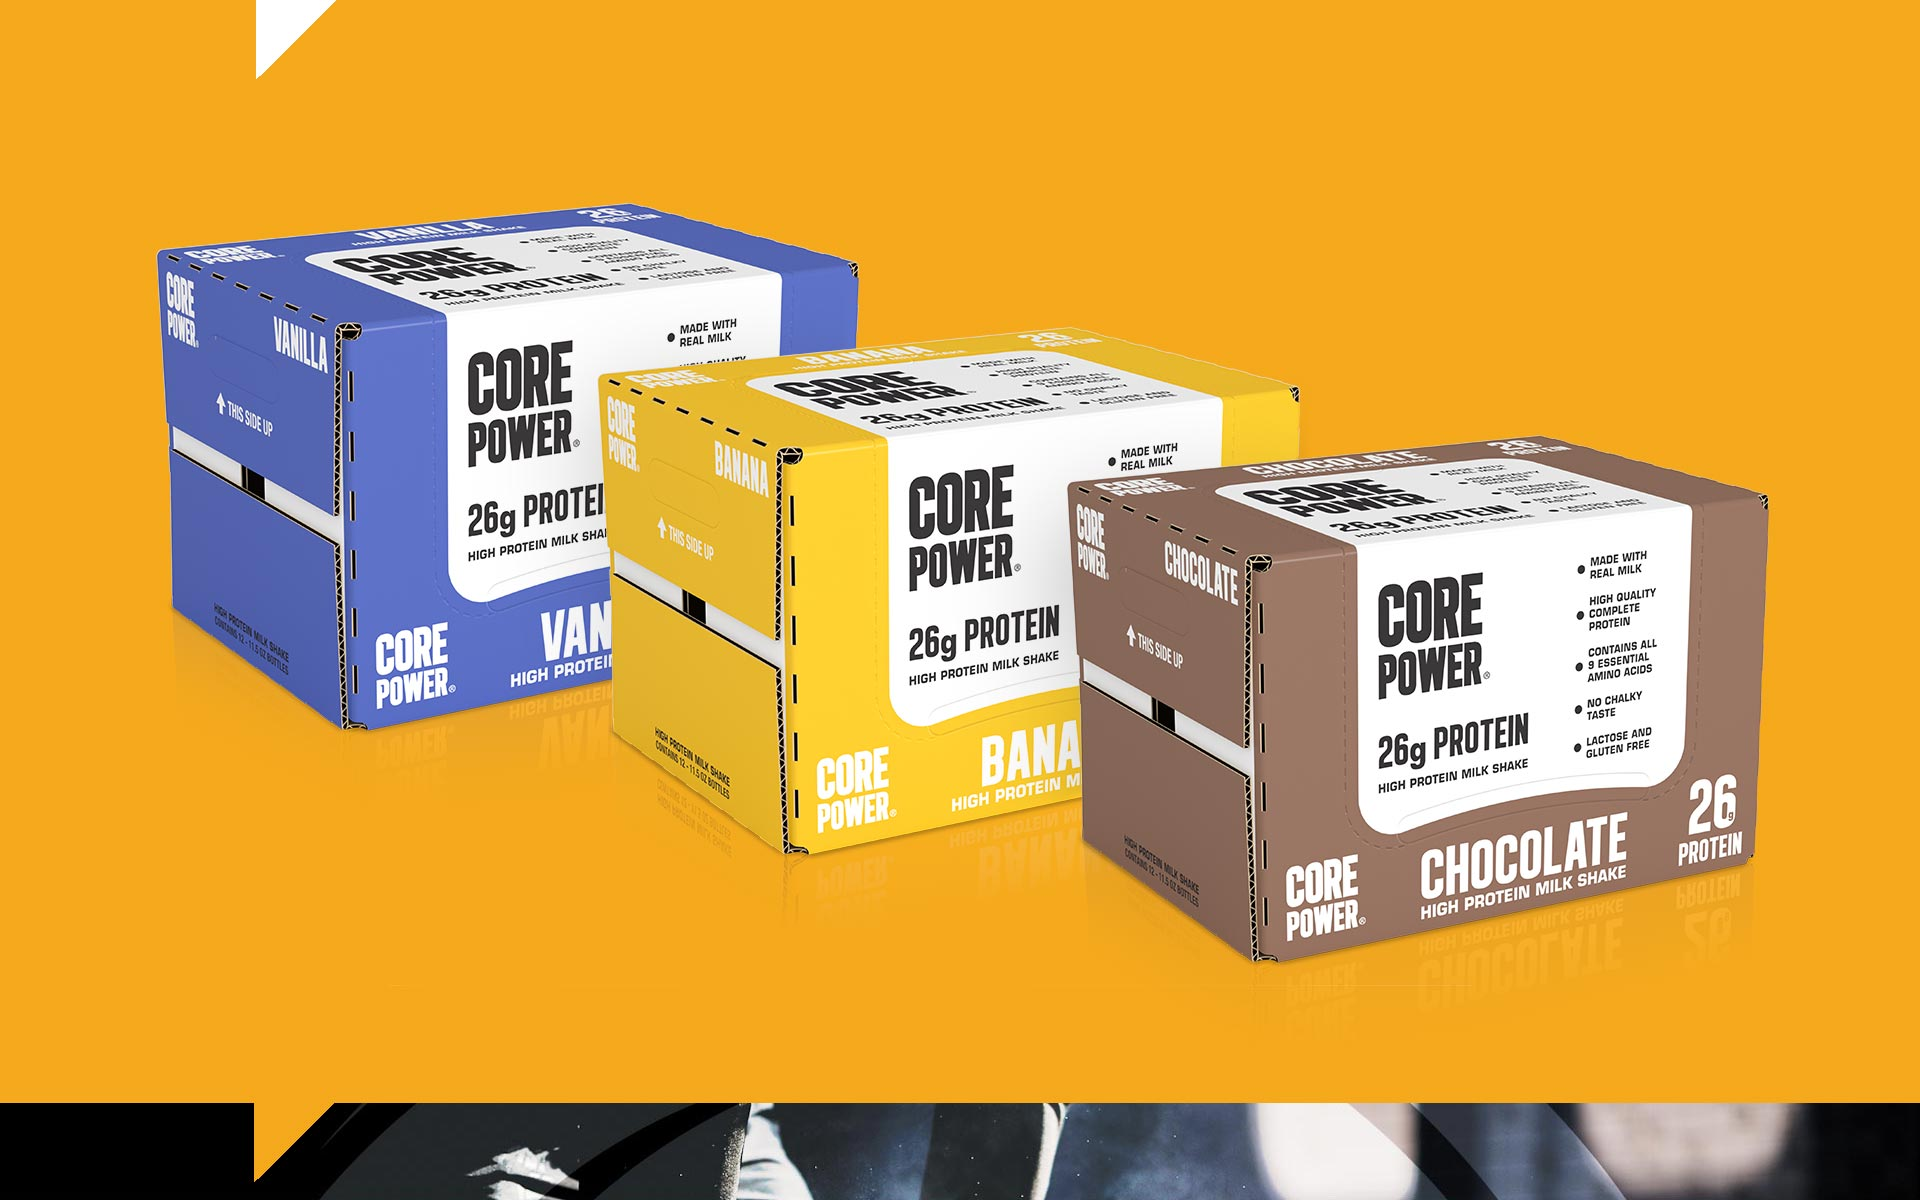 Core Power - Packaging Design Packs